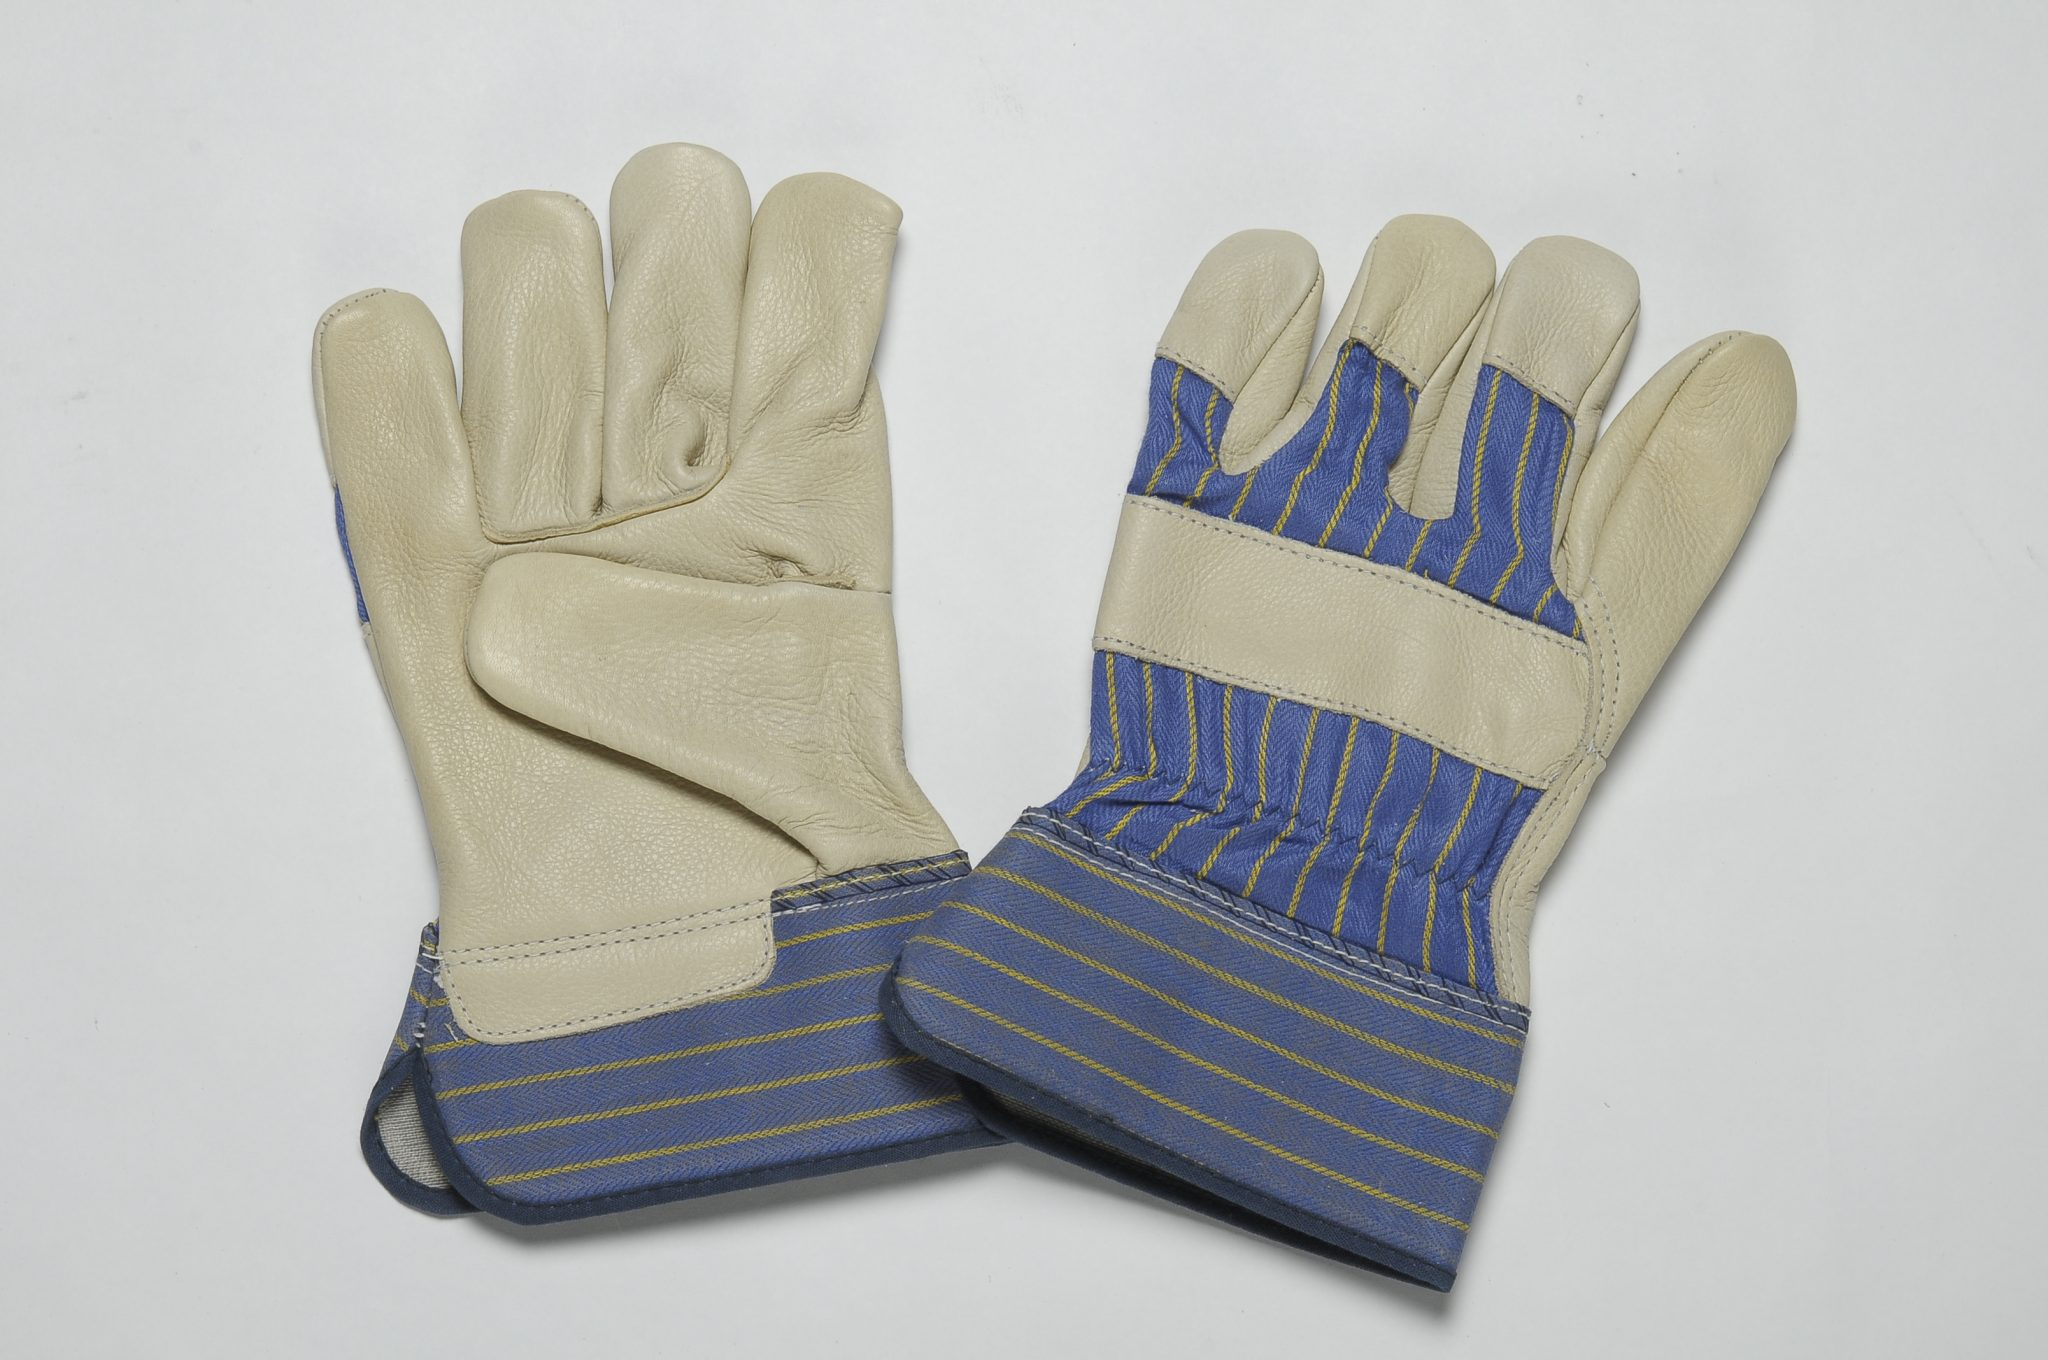 BEIGE GRAIN GLOVES. FLANNEL LINER IN THE PALM. BLUE STRIPE CUFF & BACK. ADJUSTABLE ELASTIC IN THE WRIST